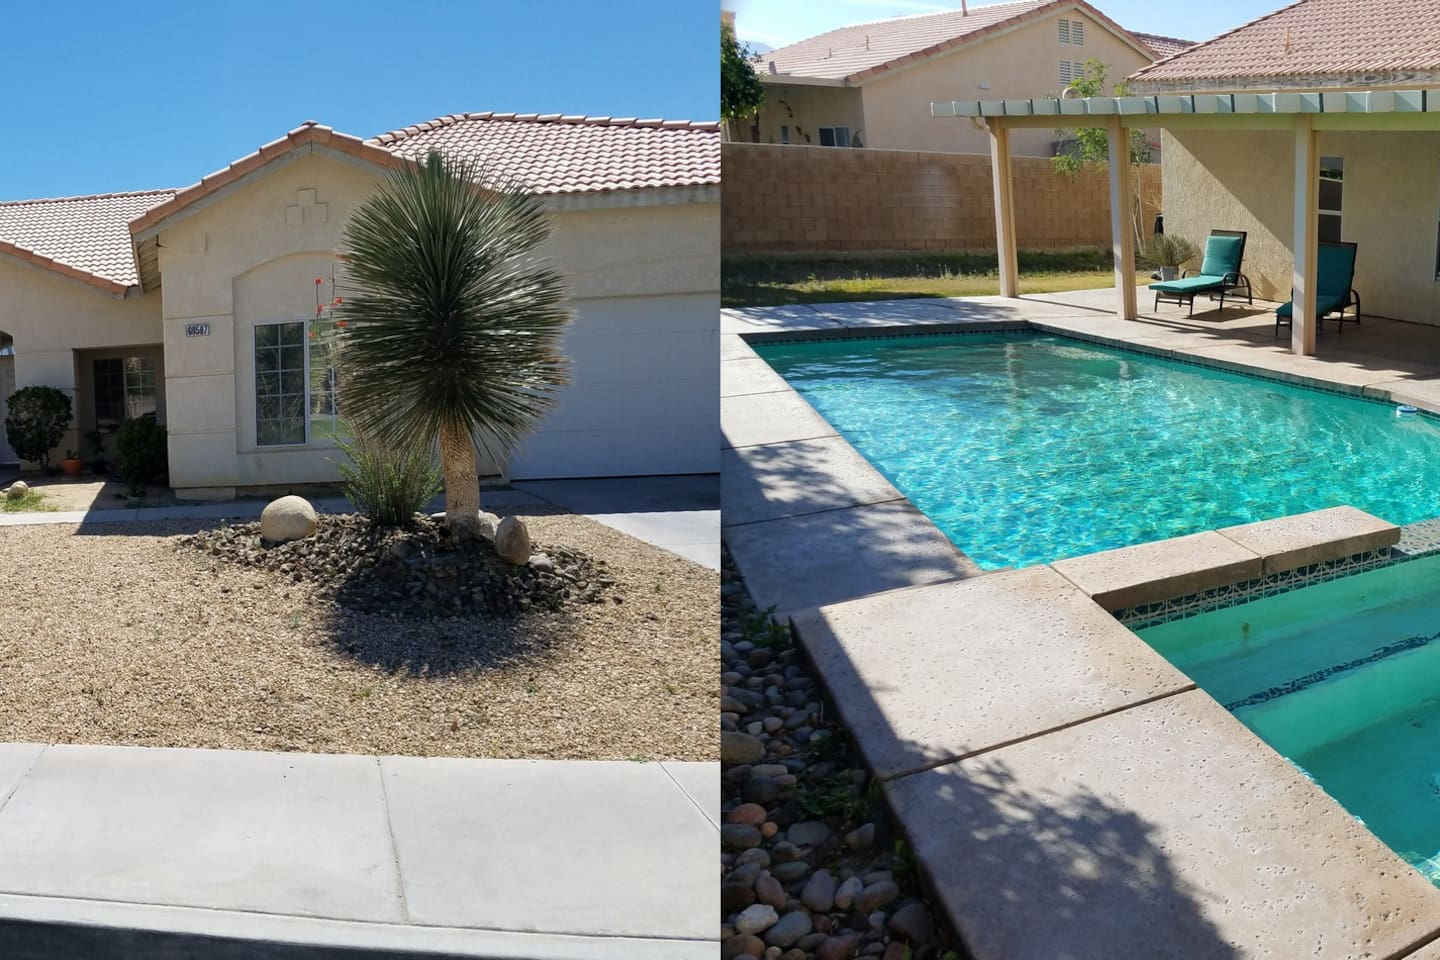 The house is located in one of the safest neighborhoods, all newer houses, and very sunny and open